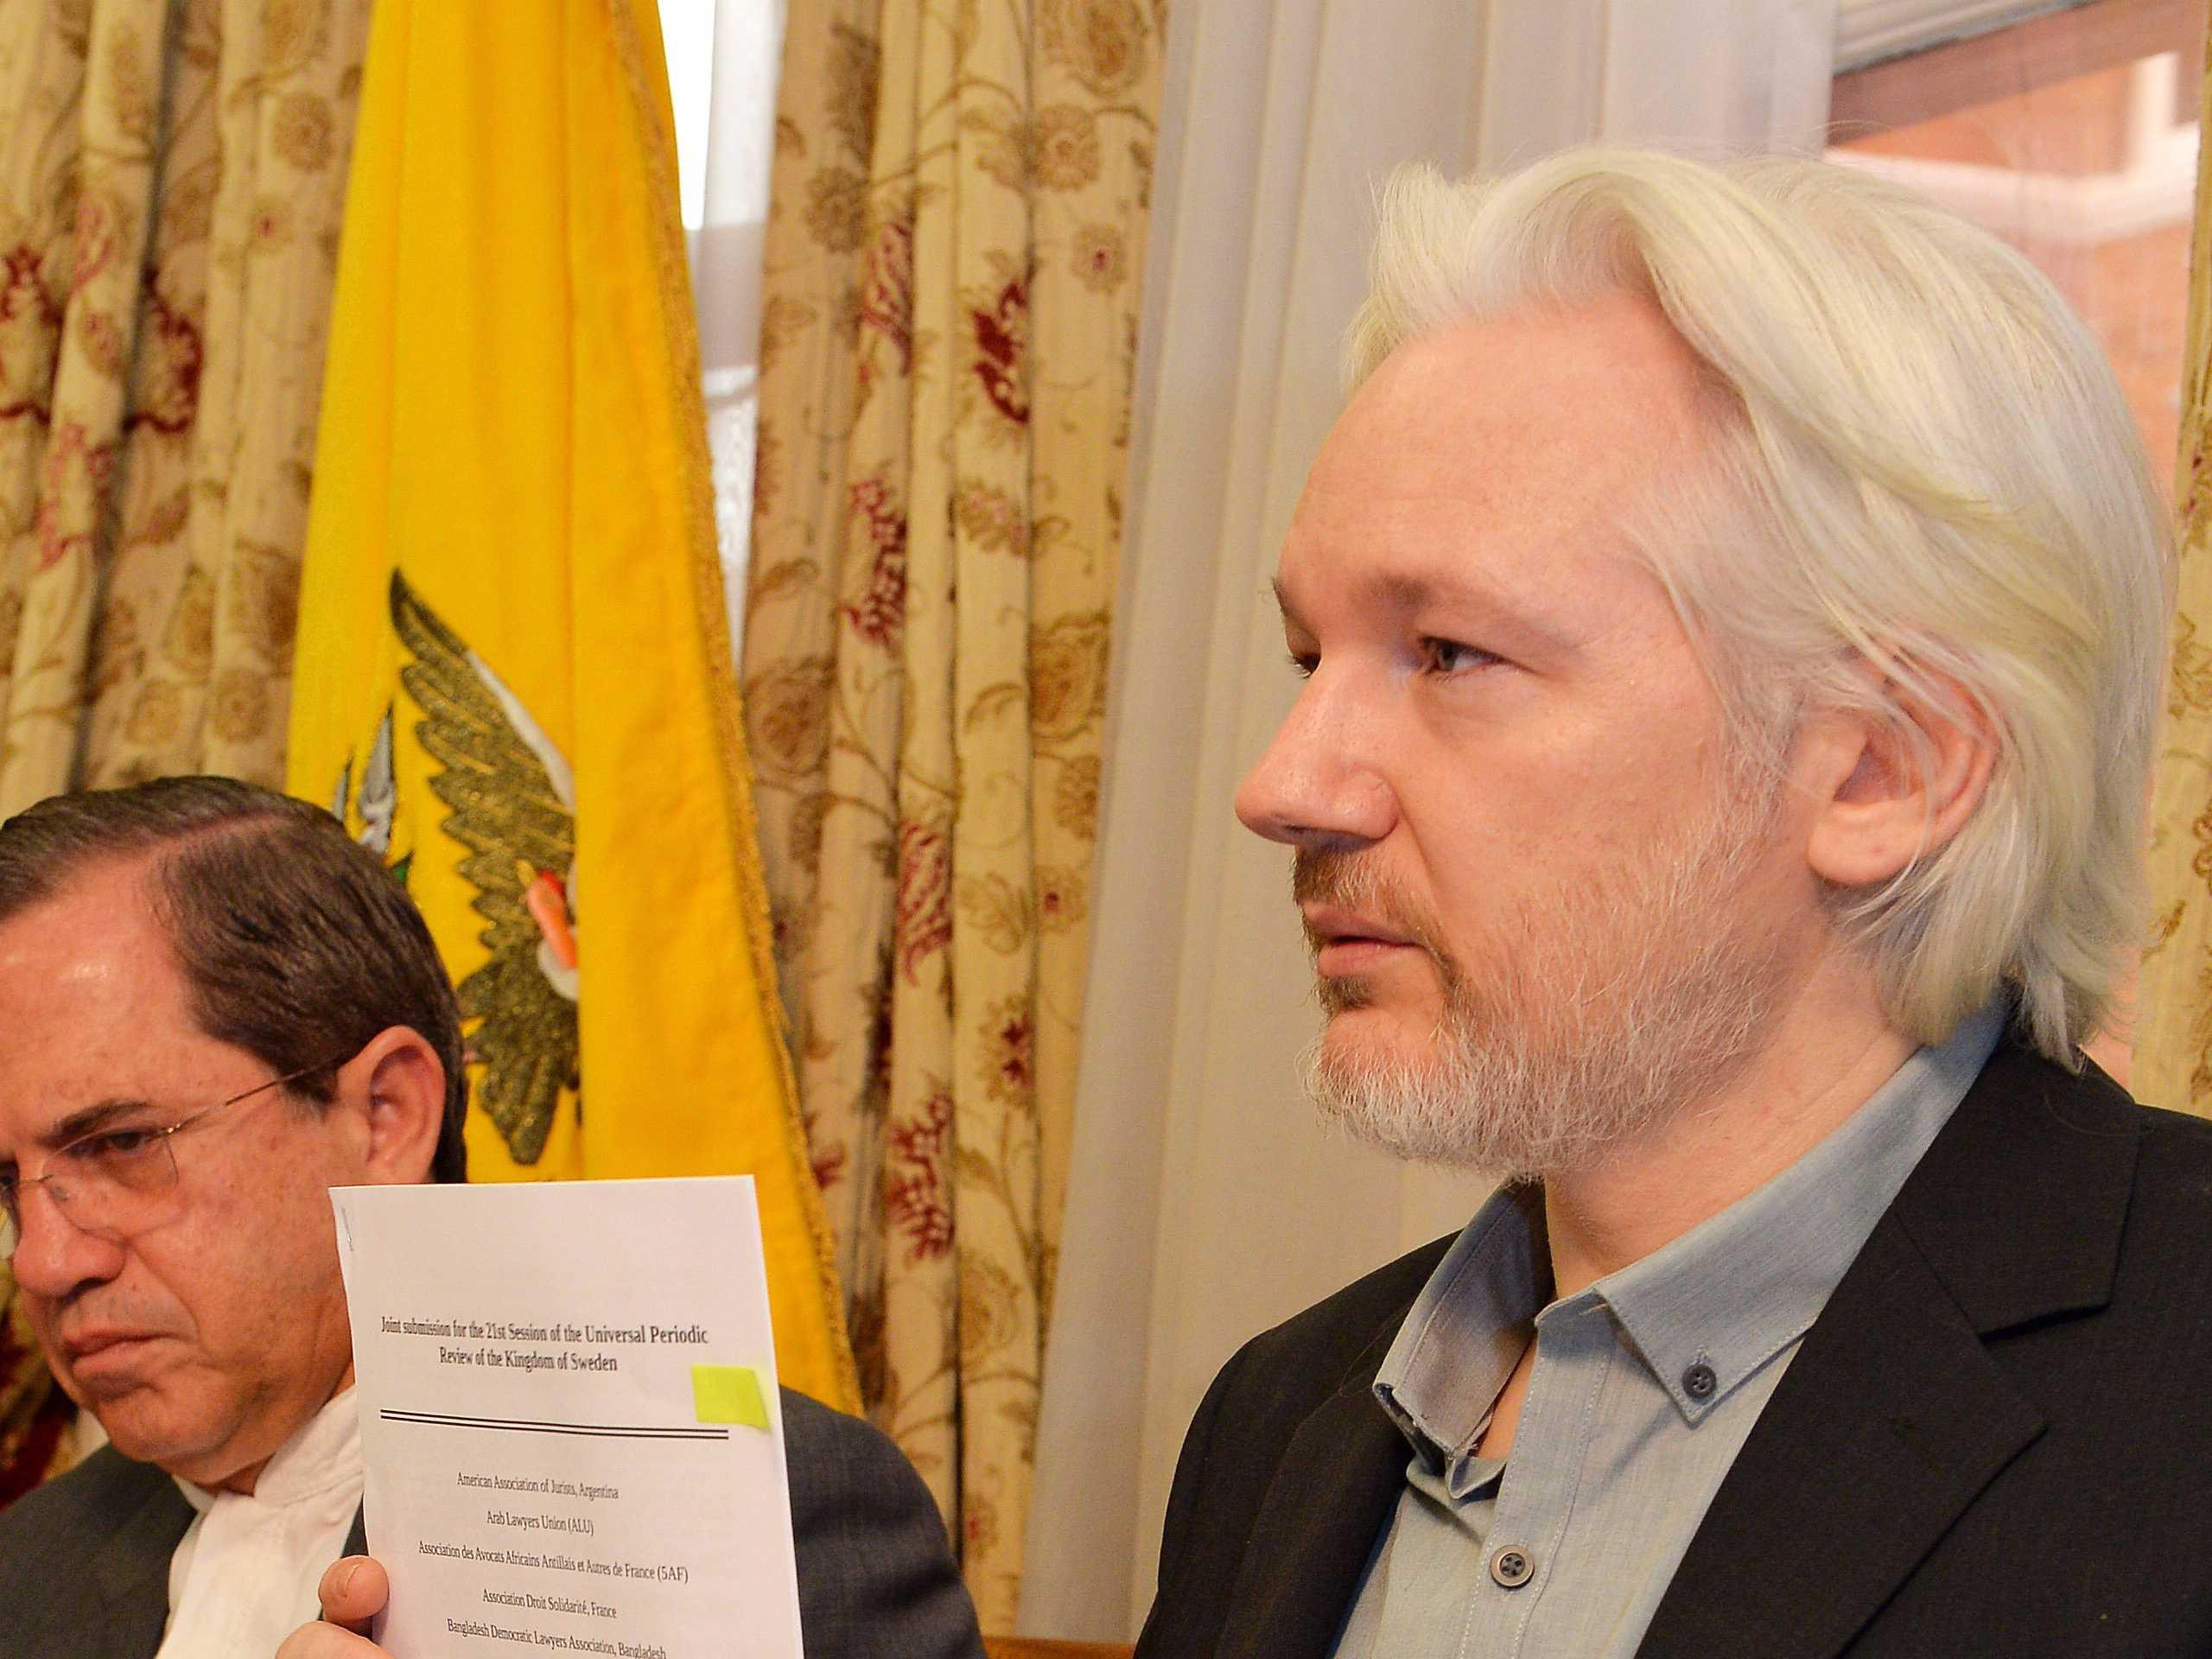 WikiLeaks just published 30,000 documents from the Sony hack